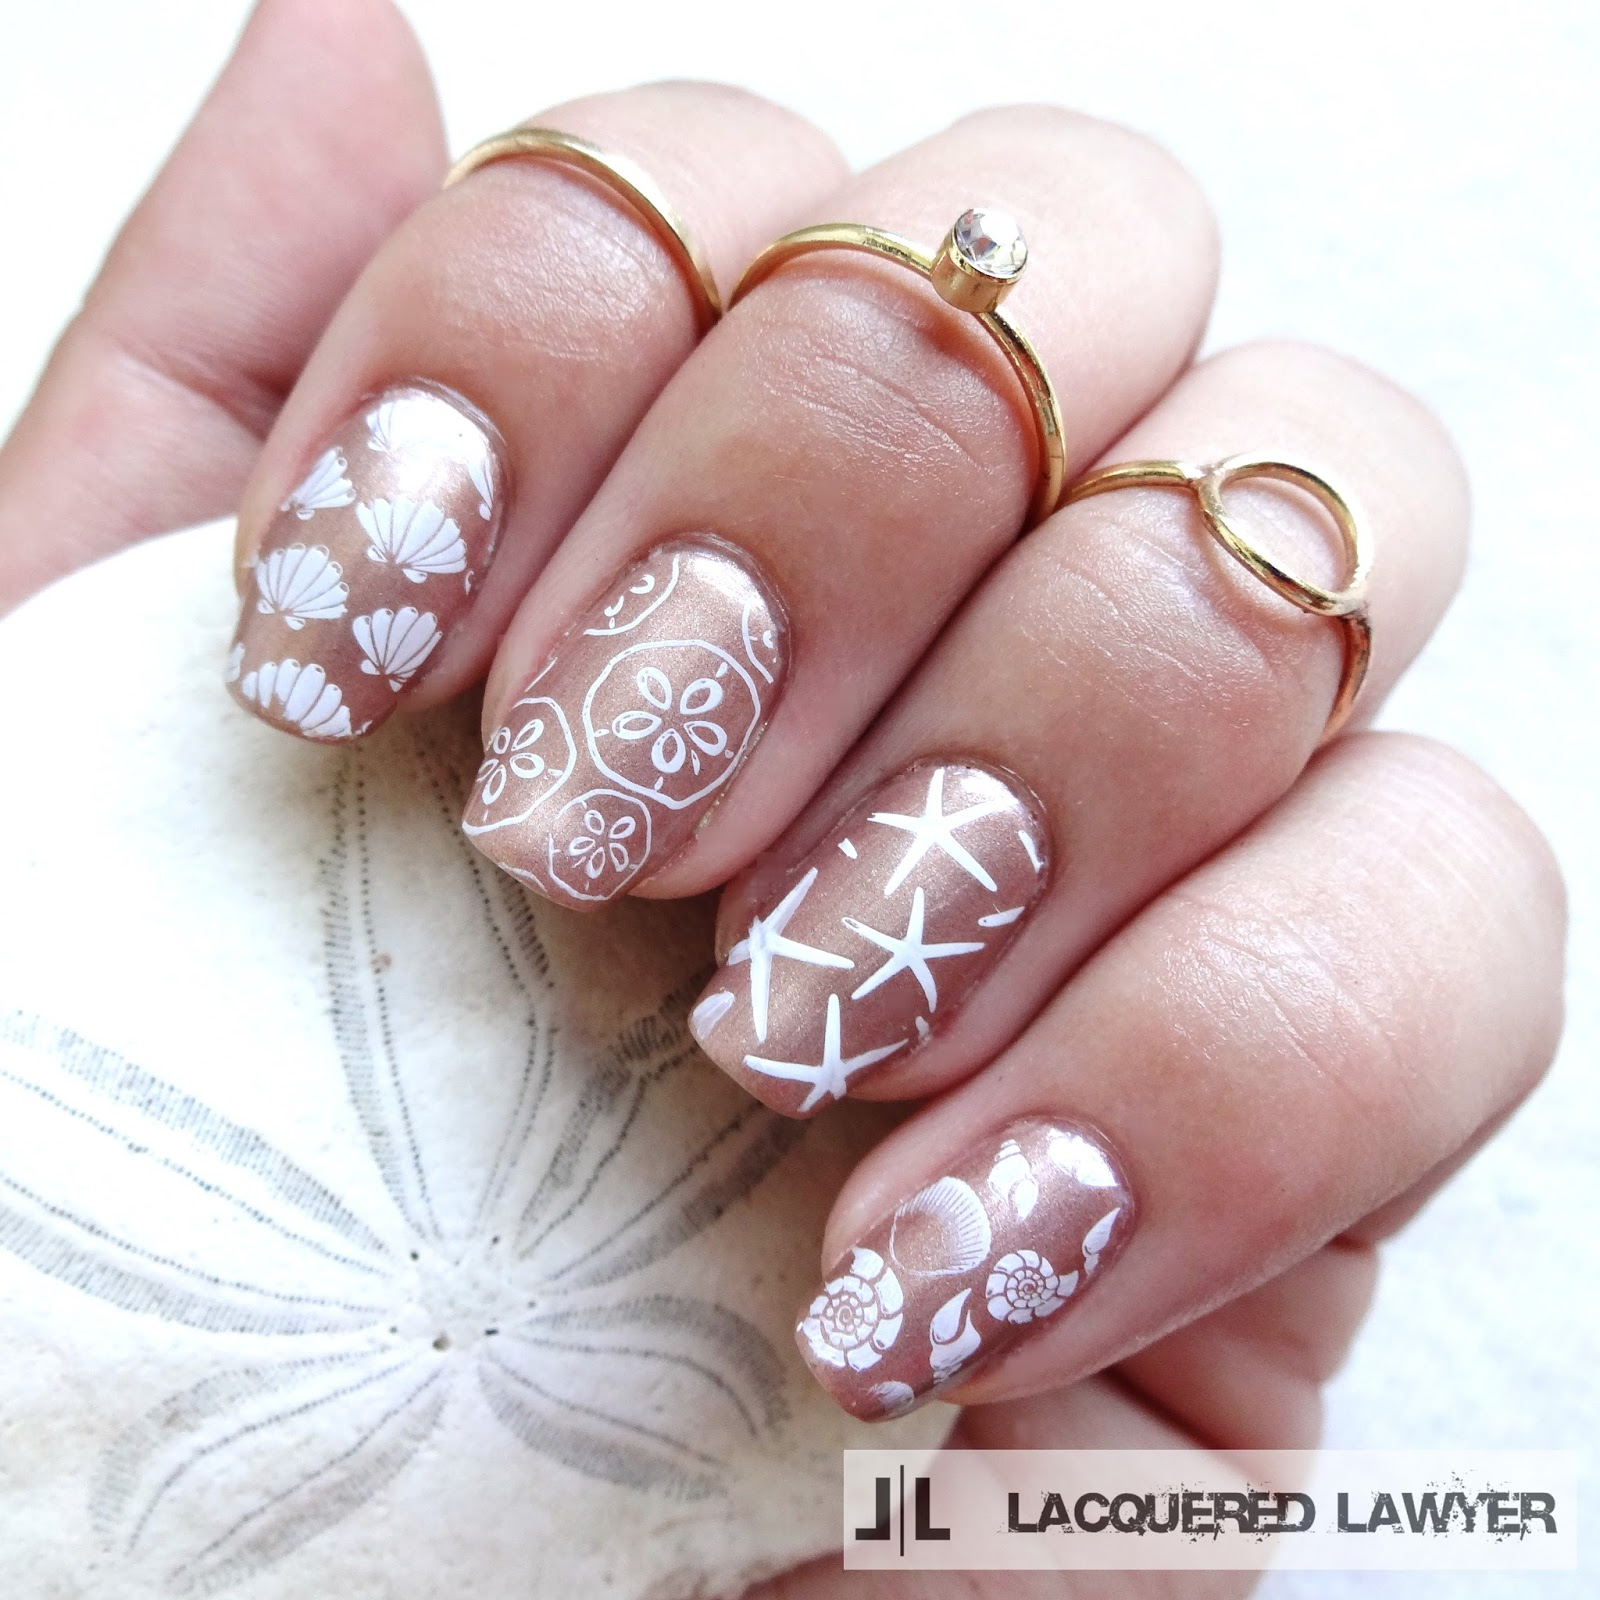 Painting Seashells With Nail Polish: 35 Pretty Seashell Nail Designs